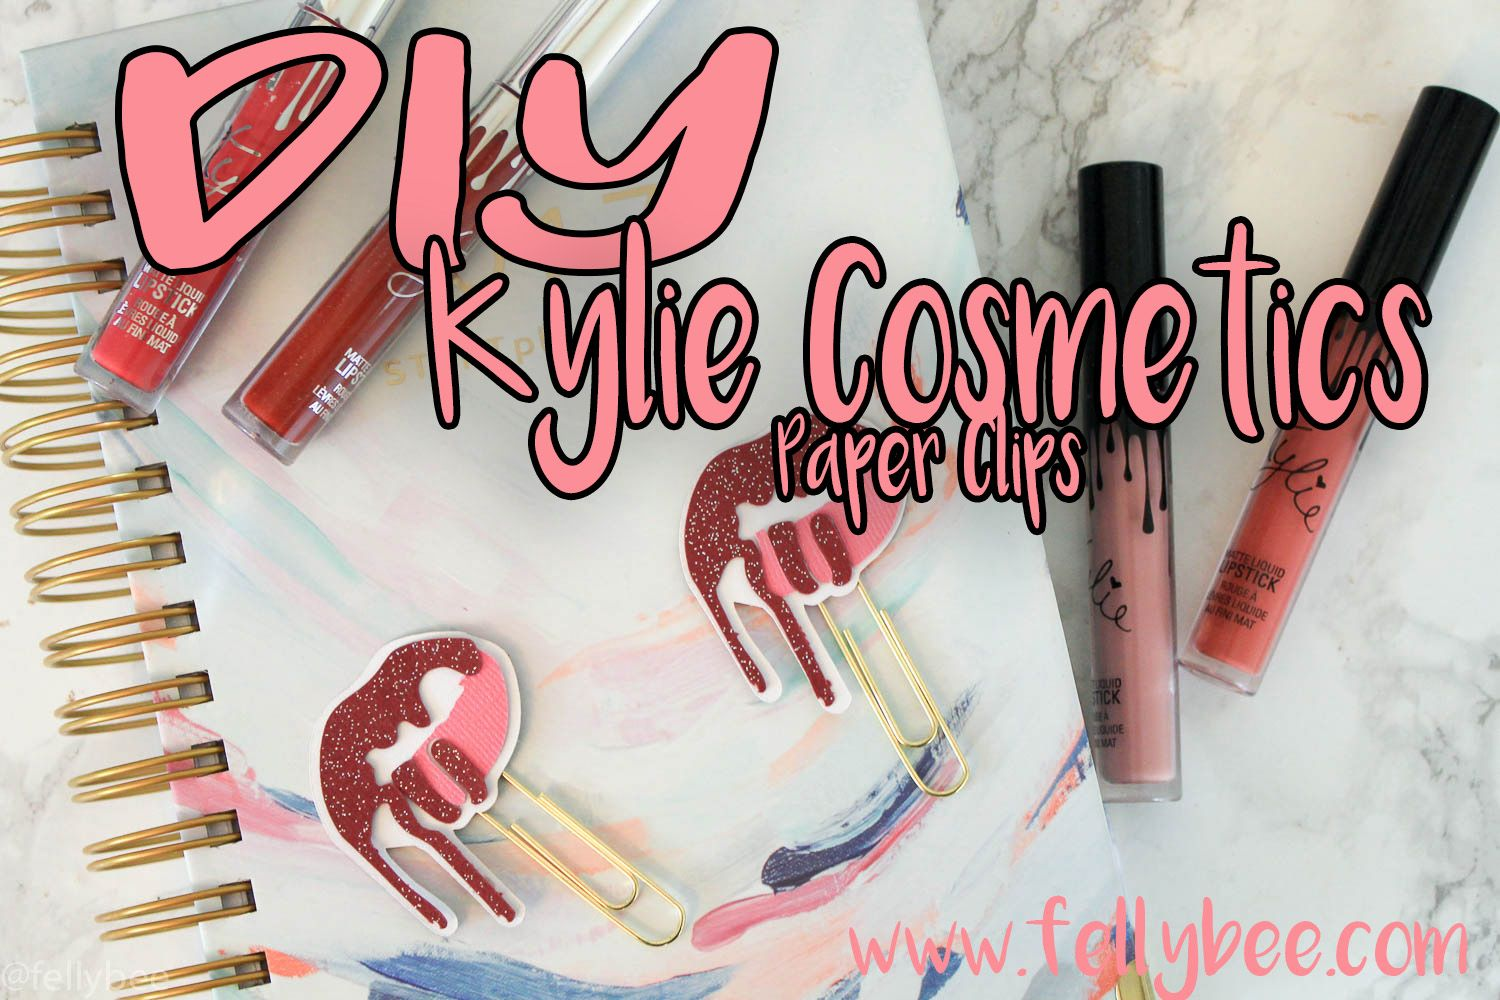 FREE download to make the Kylie Cosmetics planner clip!